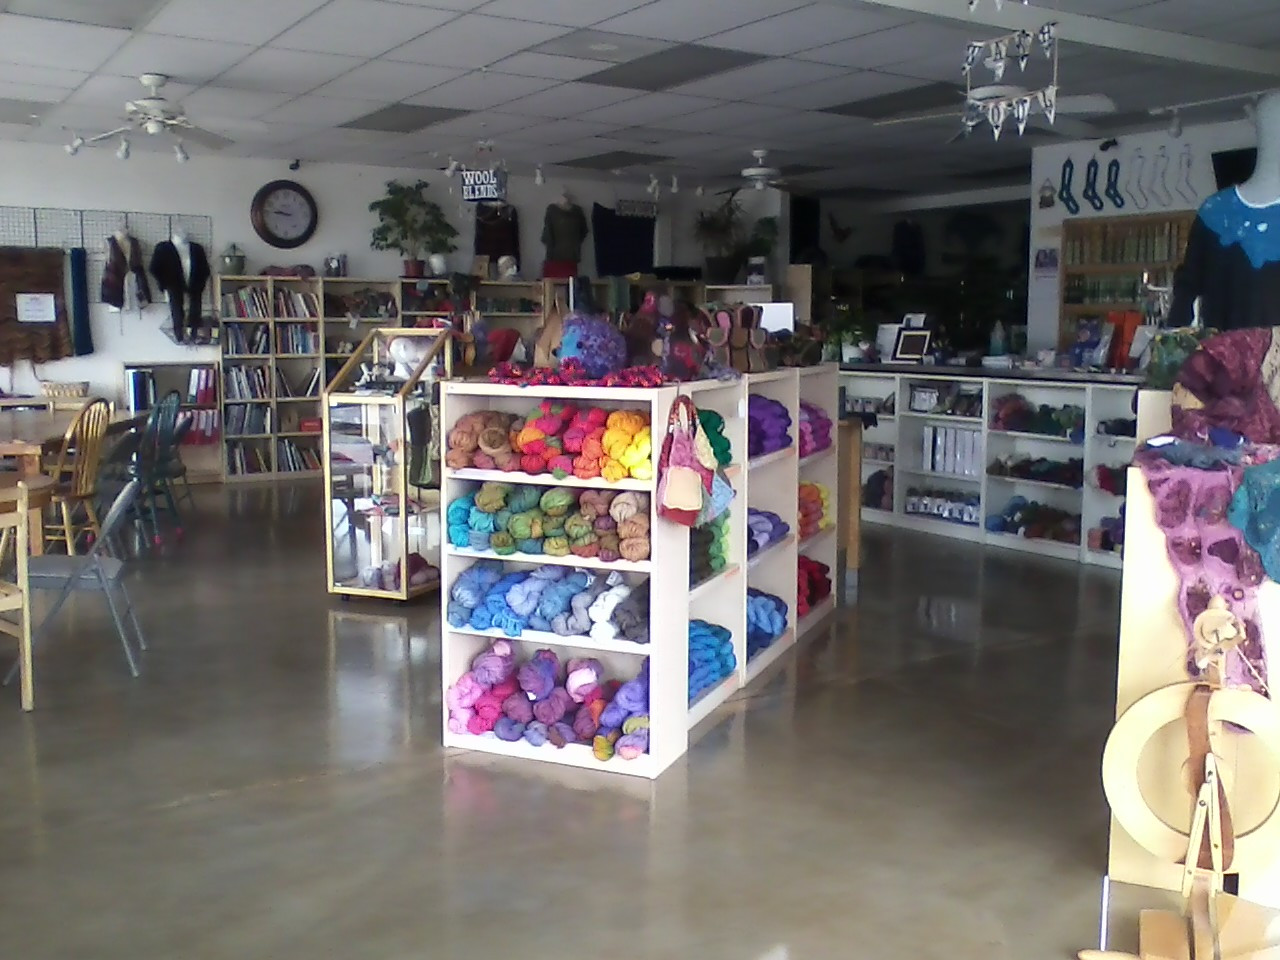 Lovely Tempe Yarn and Fiber In Tempe Arizona Yarn Outlet Of Amazing 50 Photos Yarn Outlet